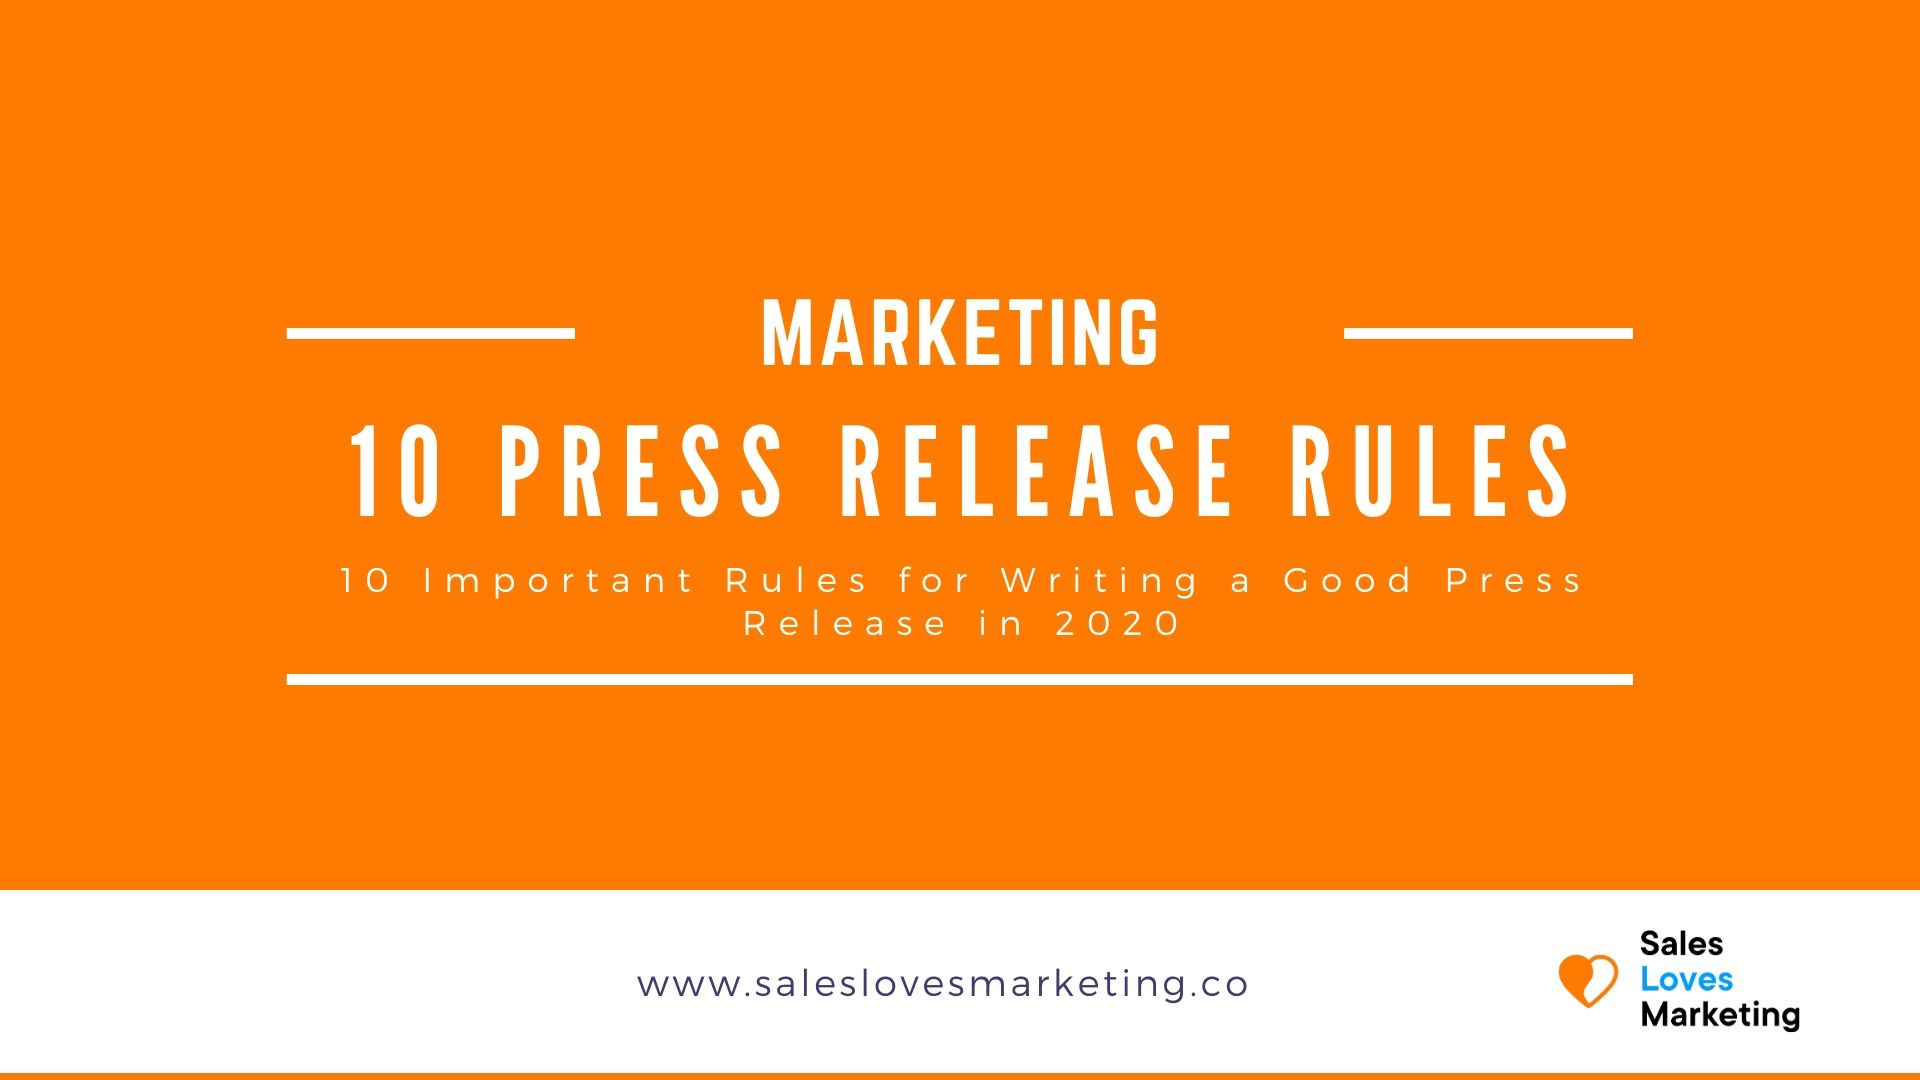 How do you write a good press release? Read it here with 10 rules to follow.